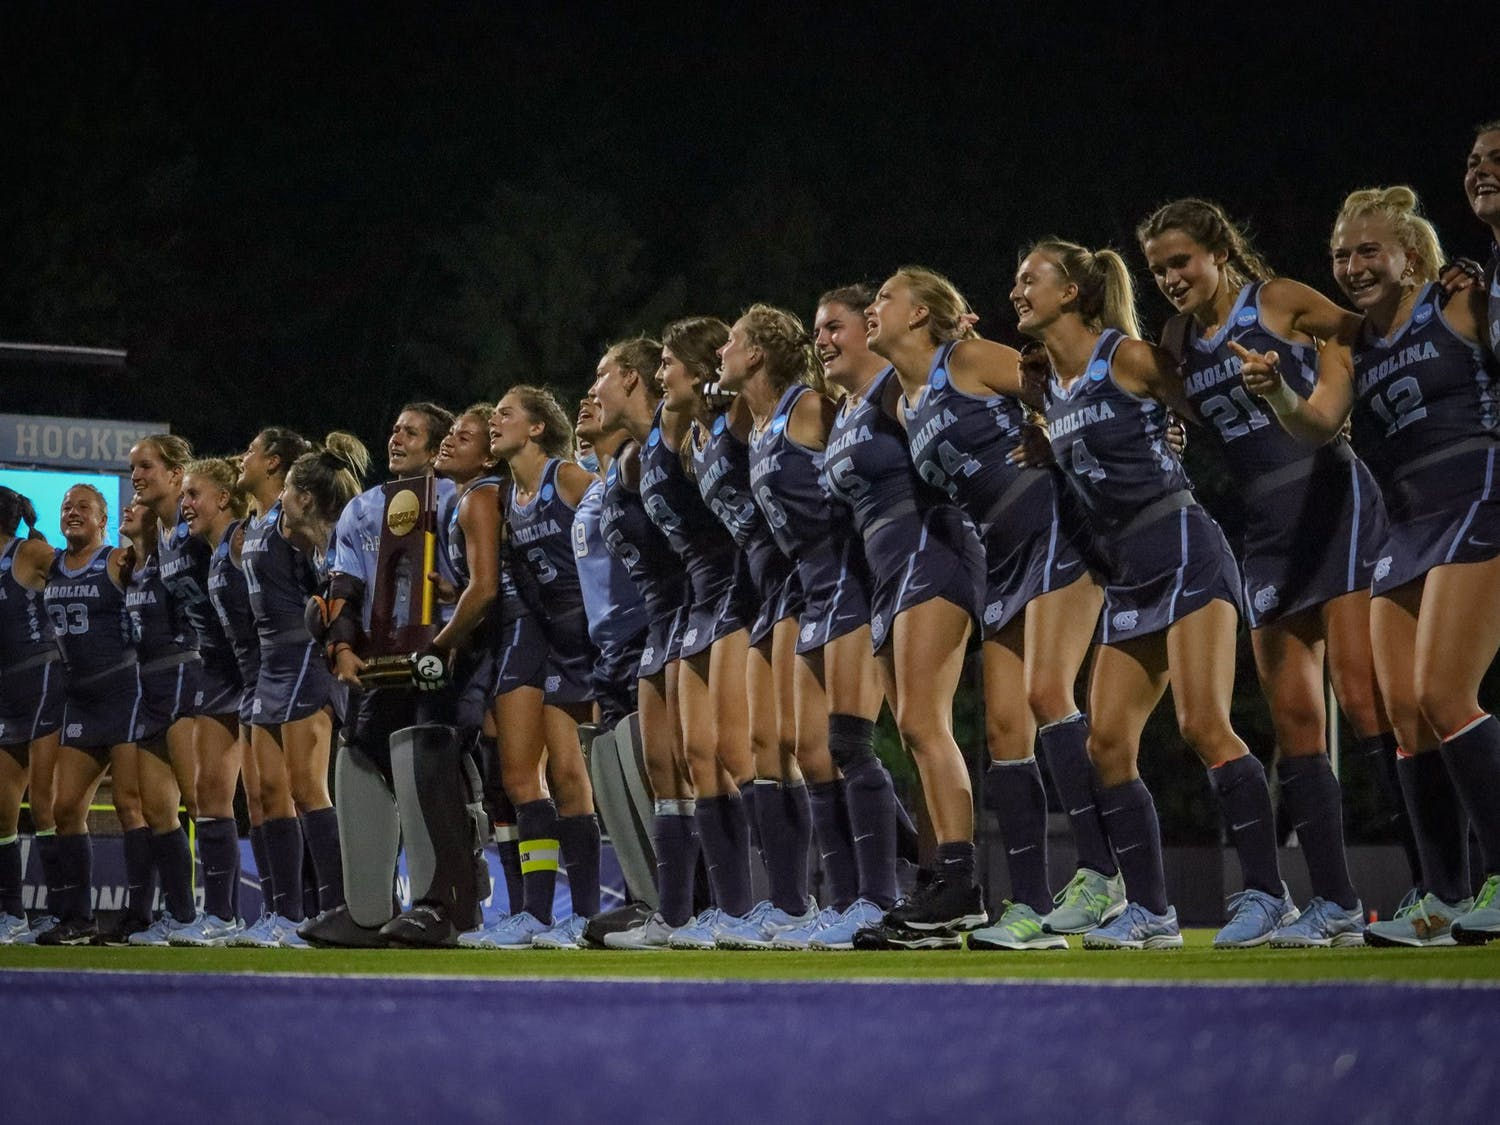 UNC field hockey celebrates their third consecutive national championship on Sunday, May 9 in Chapel Hill. The Tar Heels triumphed over the Michigan Wolverines 4-3.